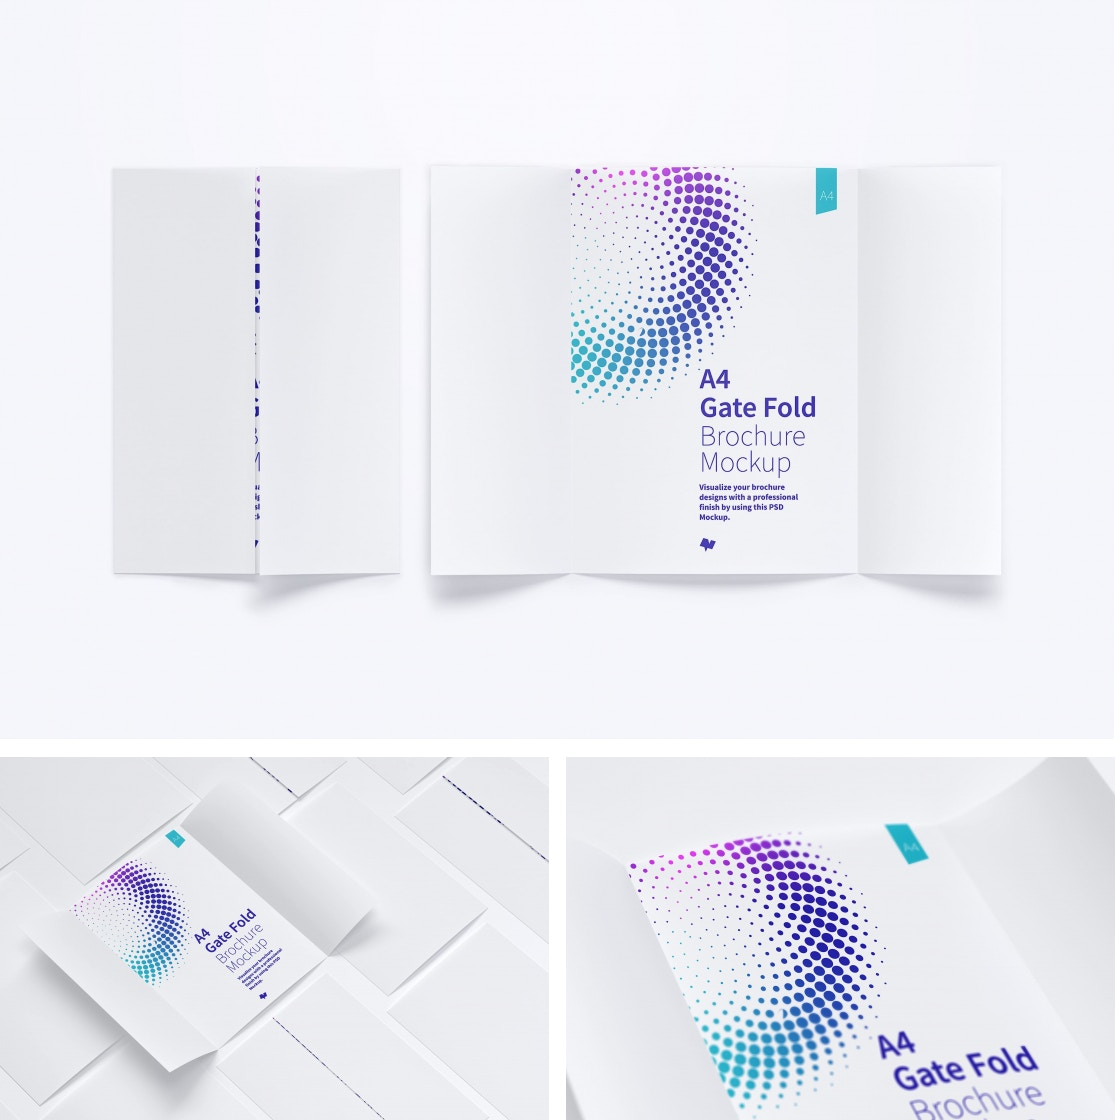 A4 Gate Fold Brochure Mockups by Original Mockups on Original Mockups